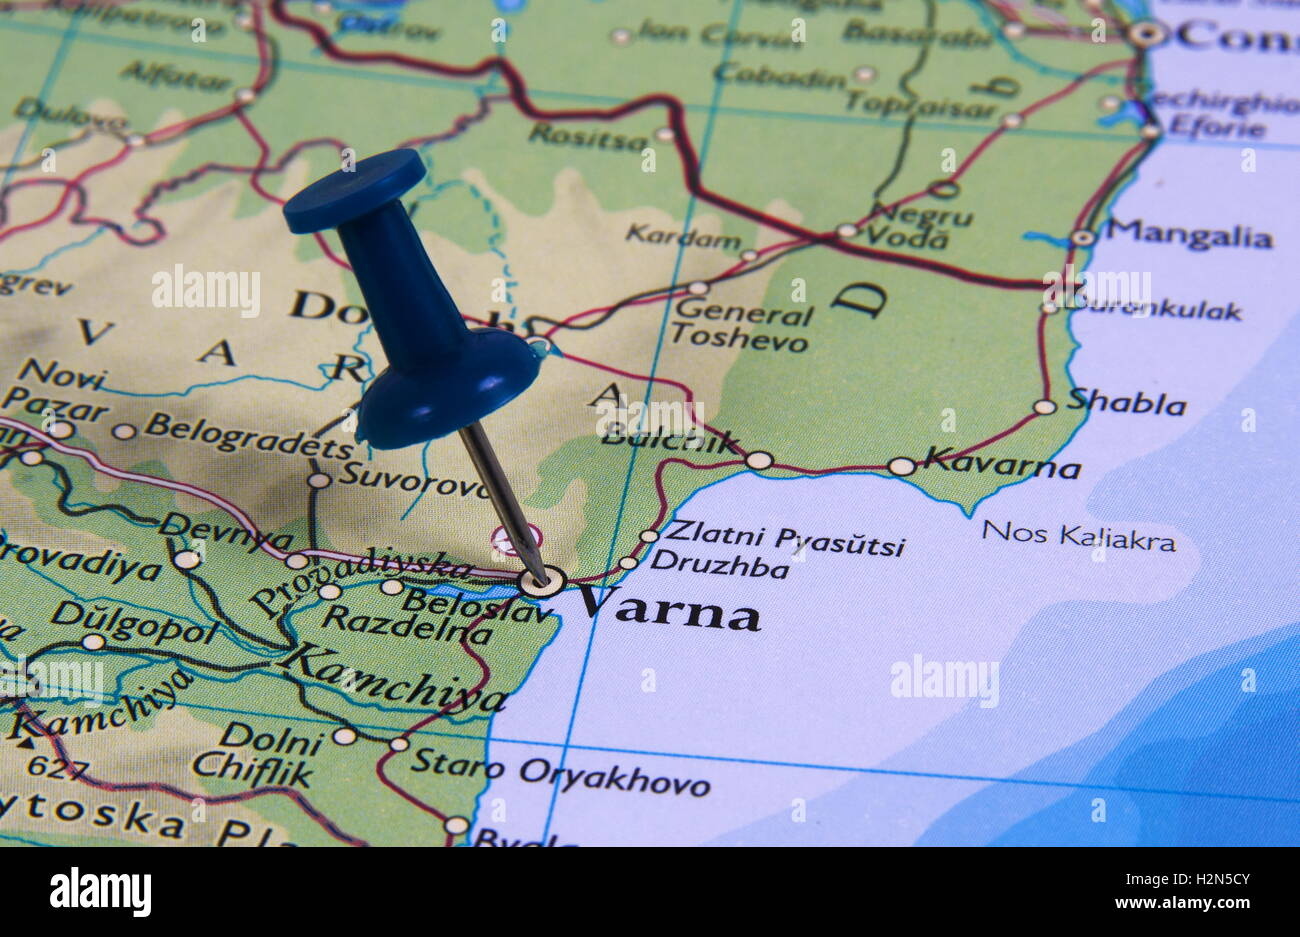 Varna In The Map With Pin Stock Photo Royalty Free Image - Varna map